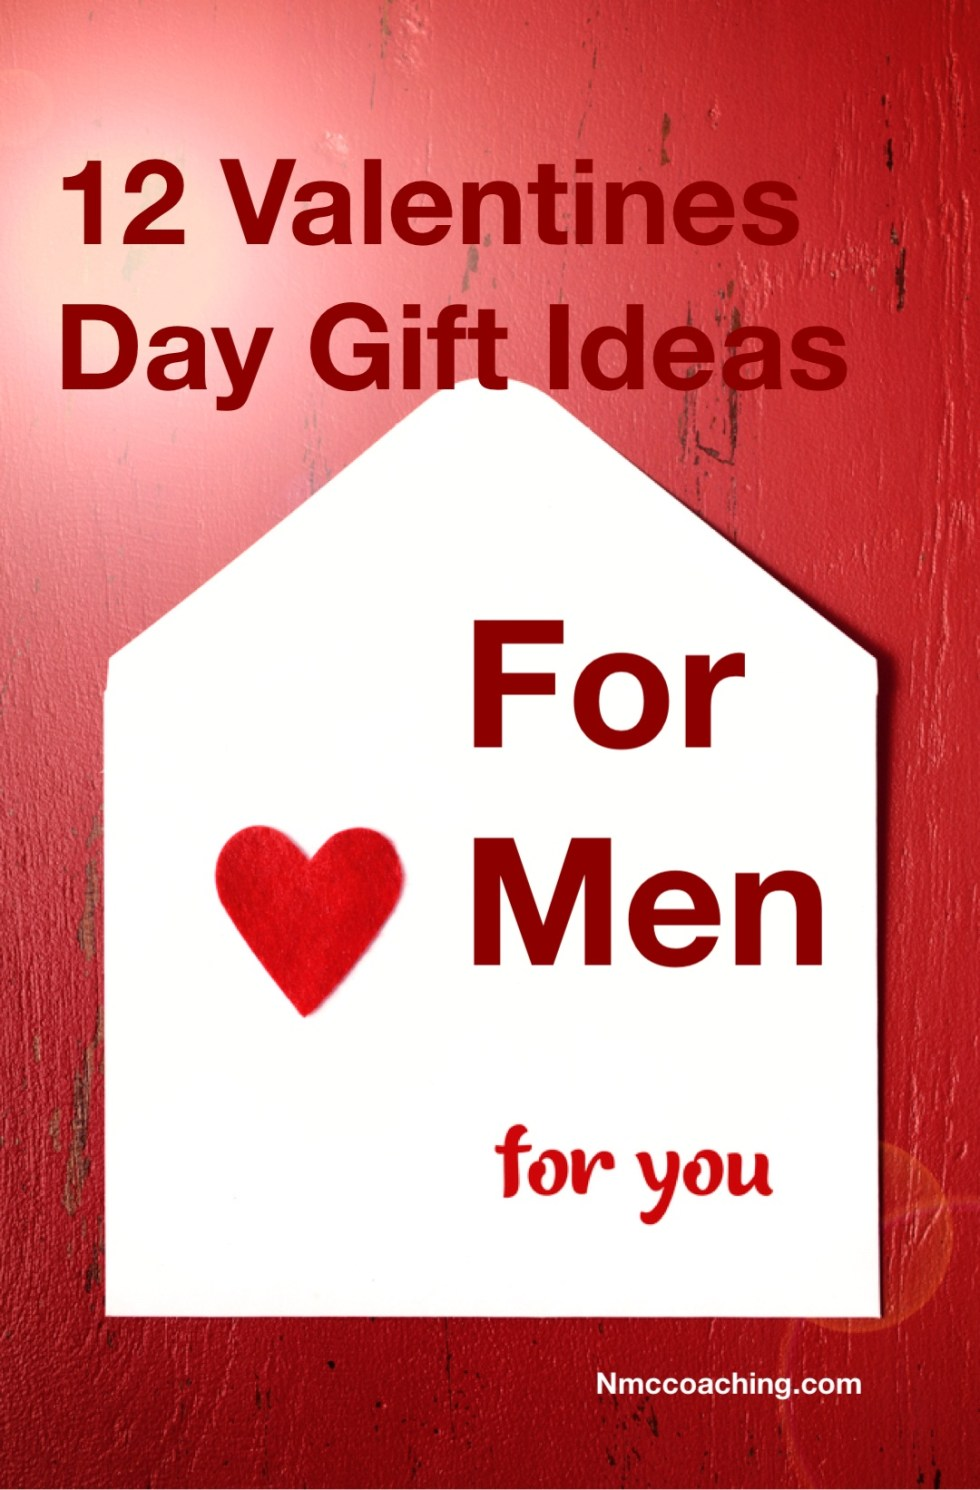 12 Valentine's Day gift ideas for men